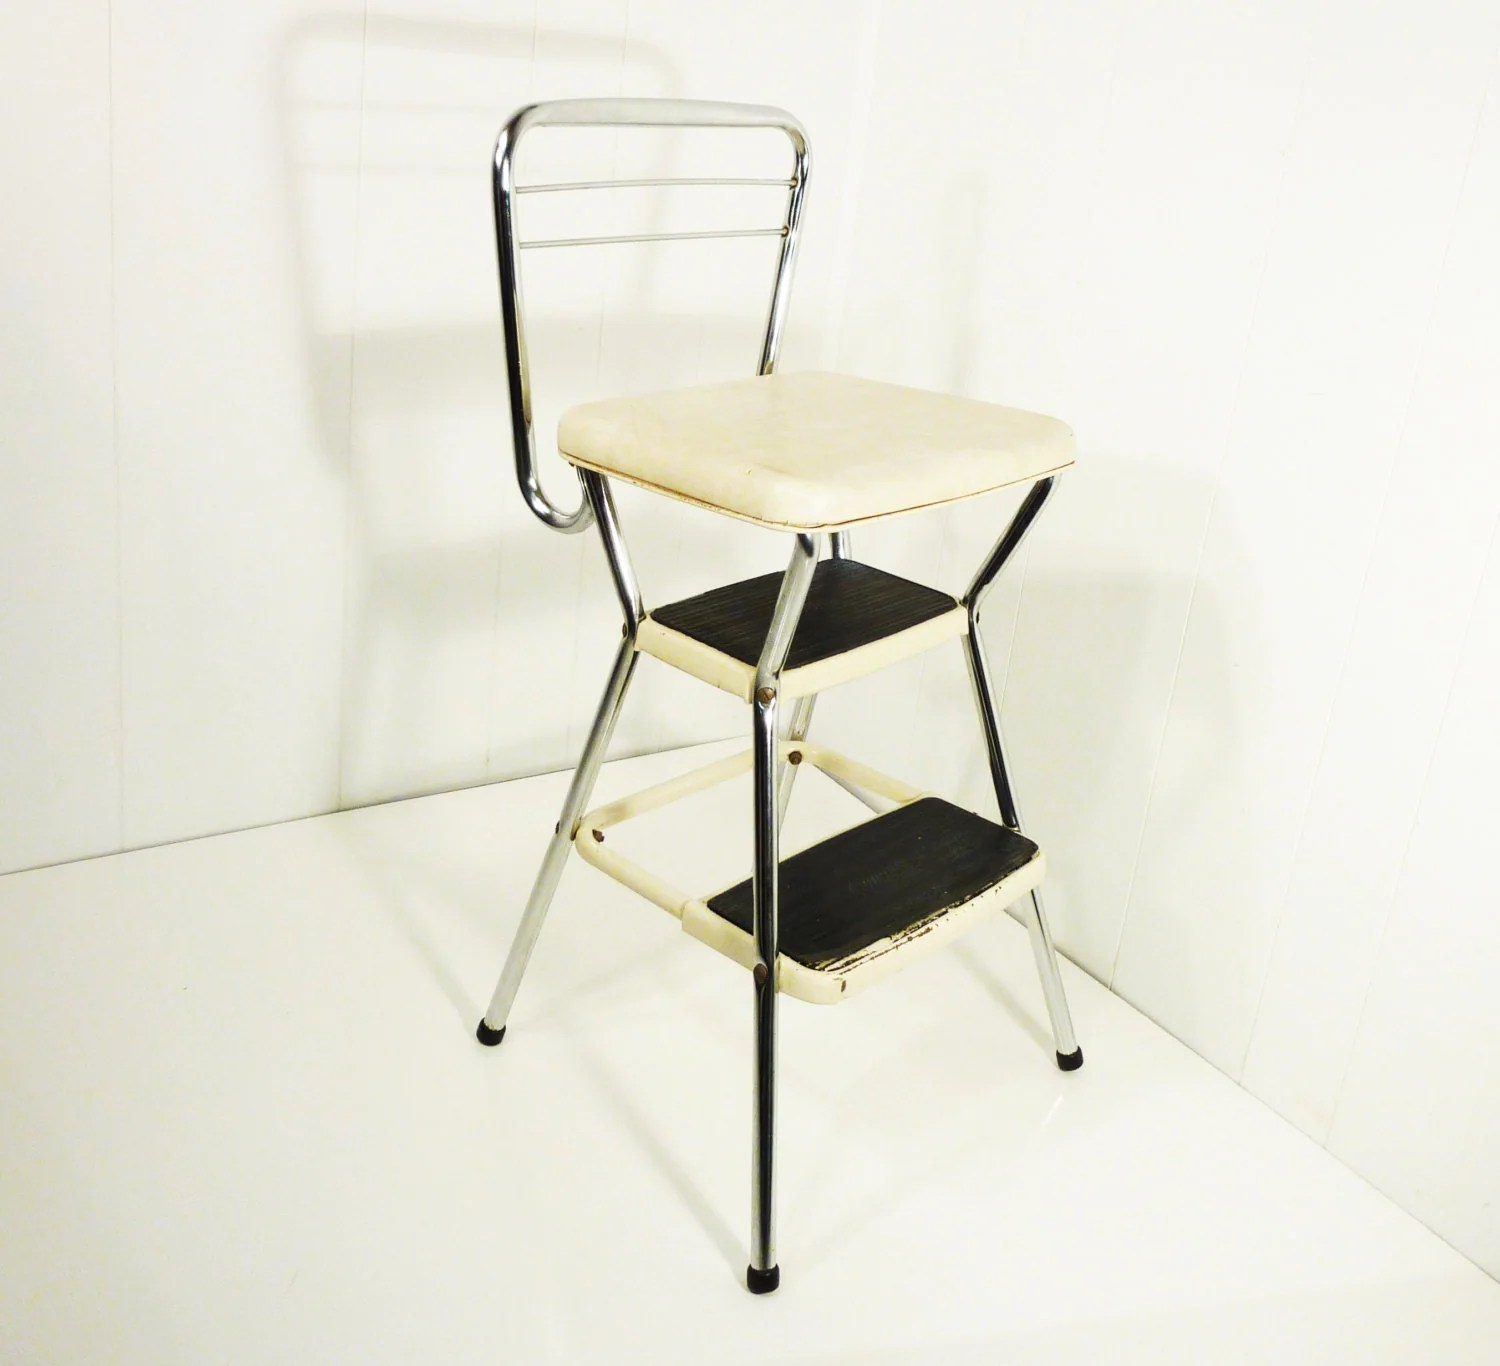 how to fold up a cosco high chair deluxe massage retro 50s vintage step stool kitchen